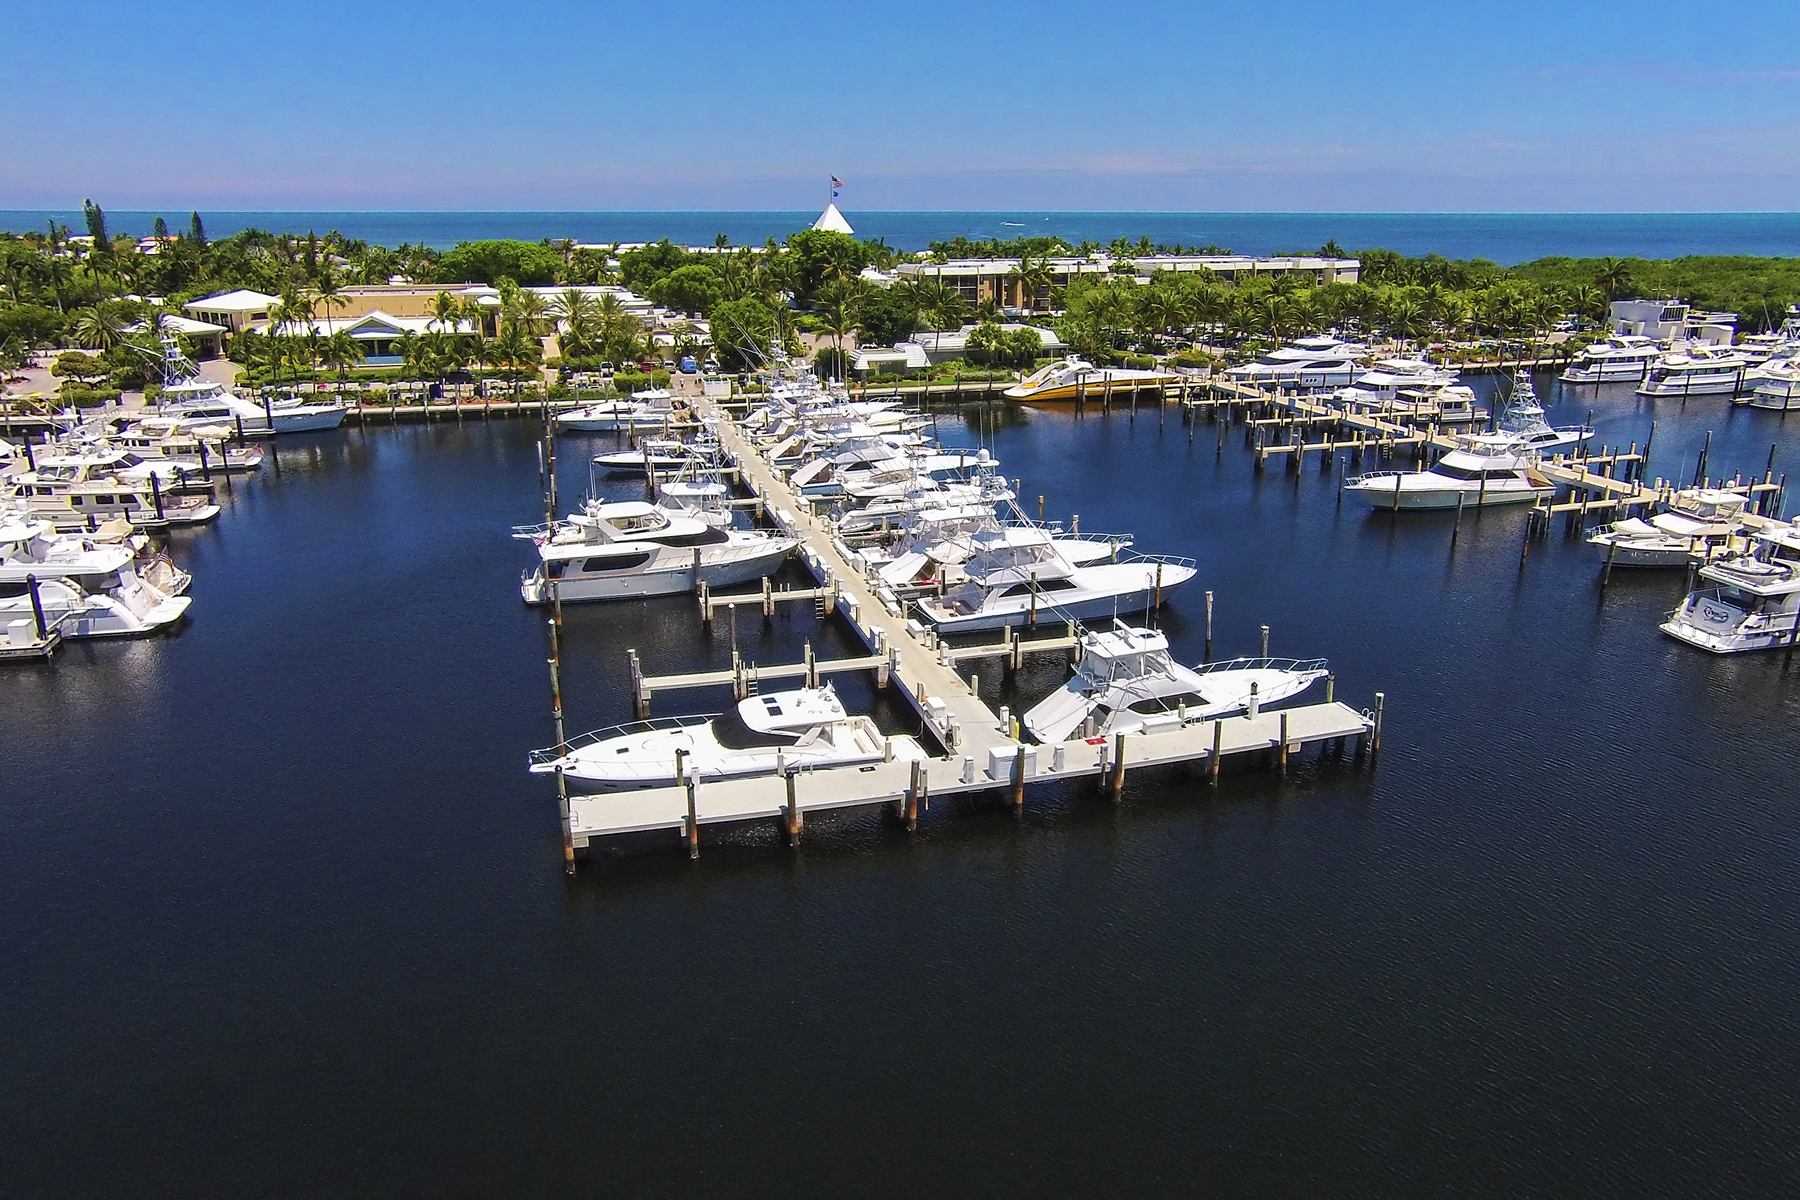 Additional photo for property listing at Ocean Reef Marina Offers Full Yacht Services 201 Ocean Reef Drive, Dock FS-25 Key Largo, Florida 33037 Estados Unidos